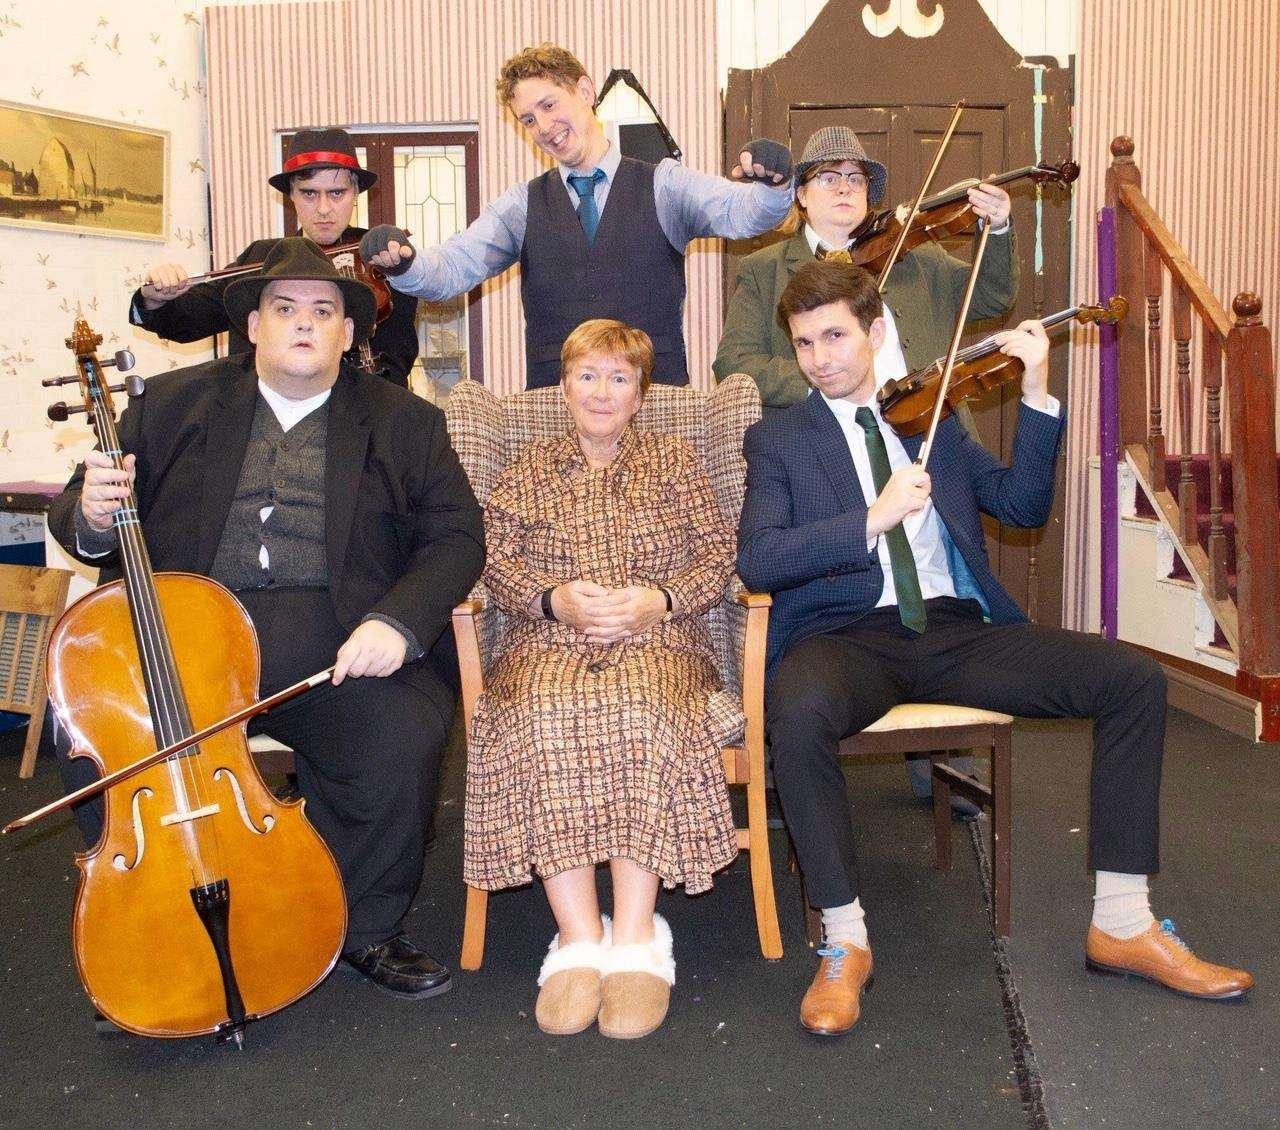 The leading players of the cast in the SADOS production of The Ladykillers at South Holland Centre, Spalding, until Saturday. Photo supplied by SADOS.